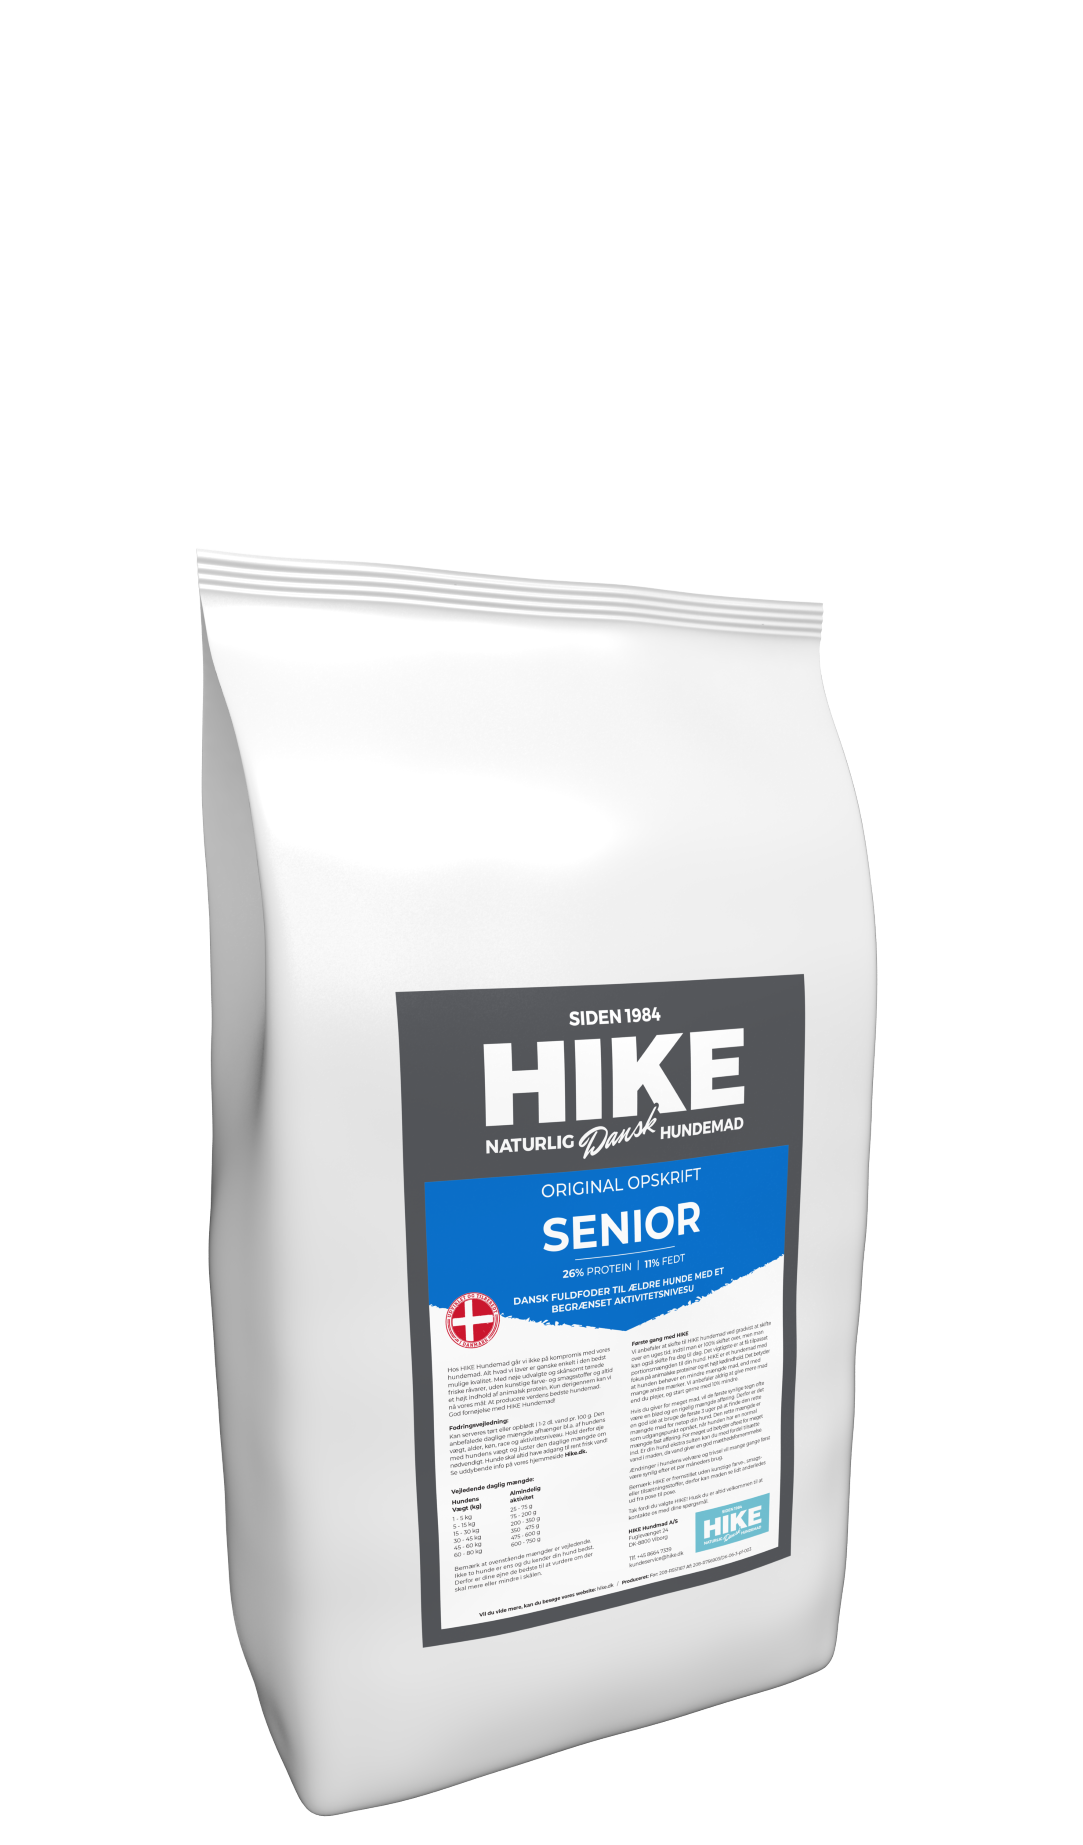 HIKE ORIGINAL Senior 26/11 hundemad 4 kg